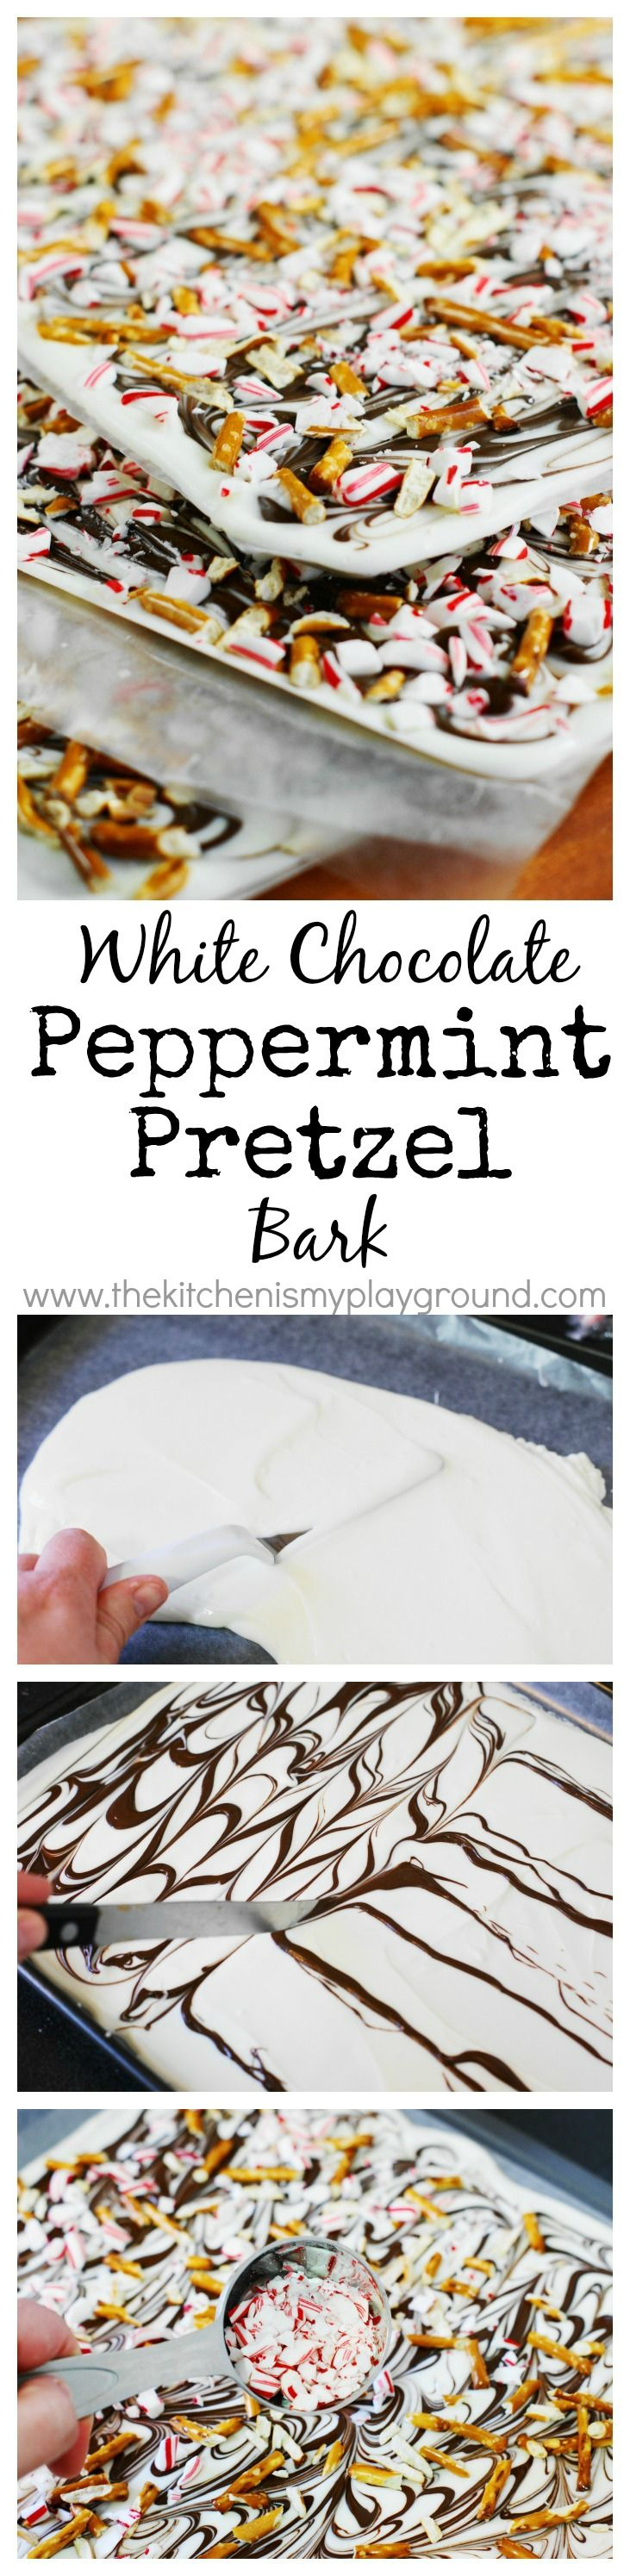 White Chocolate Peppermint-Pretzel Bark ~ a quick, easy, & super delicious peppermint treat for Christmas!   www.thekitchenismyplayground.com